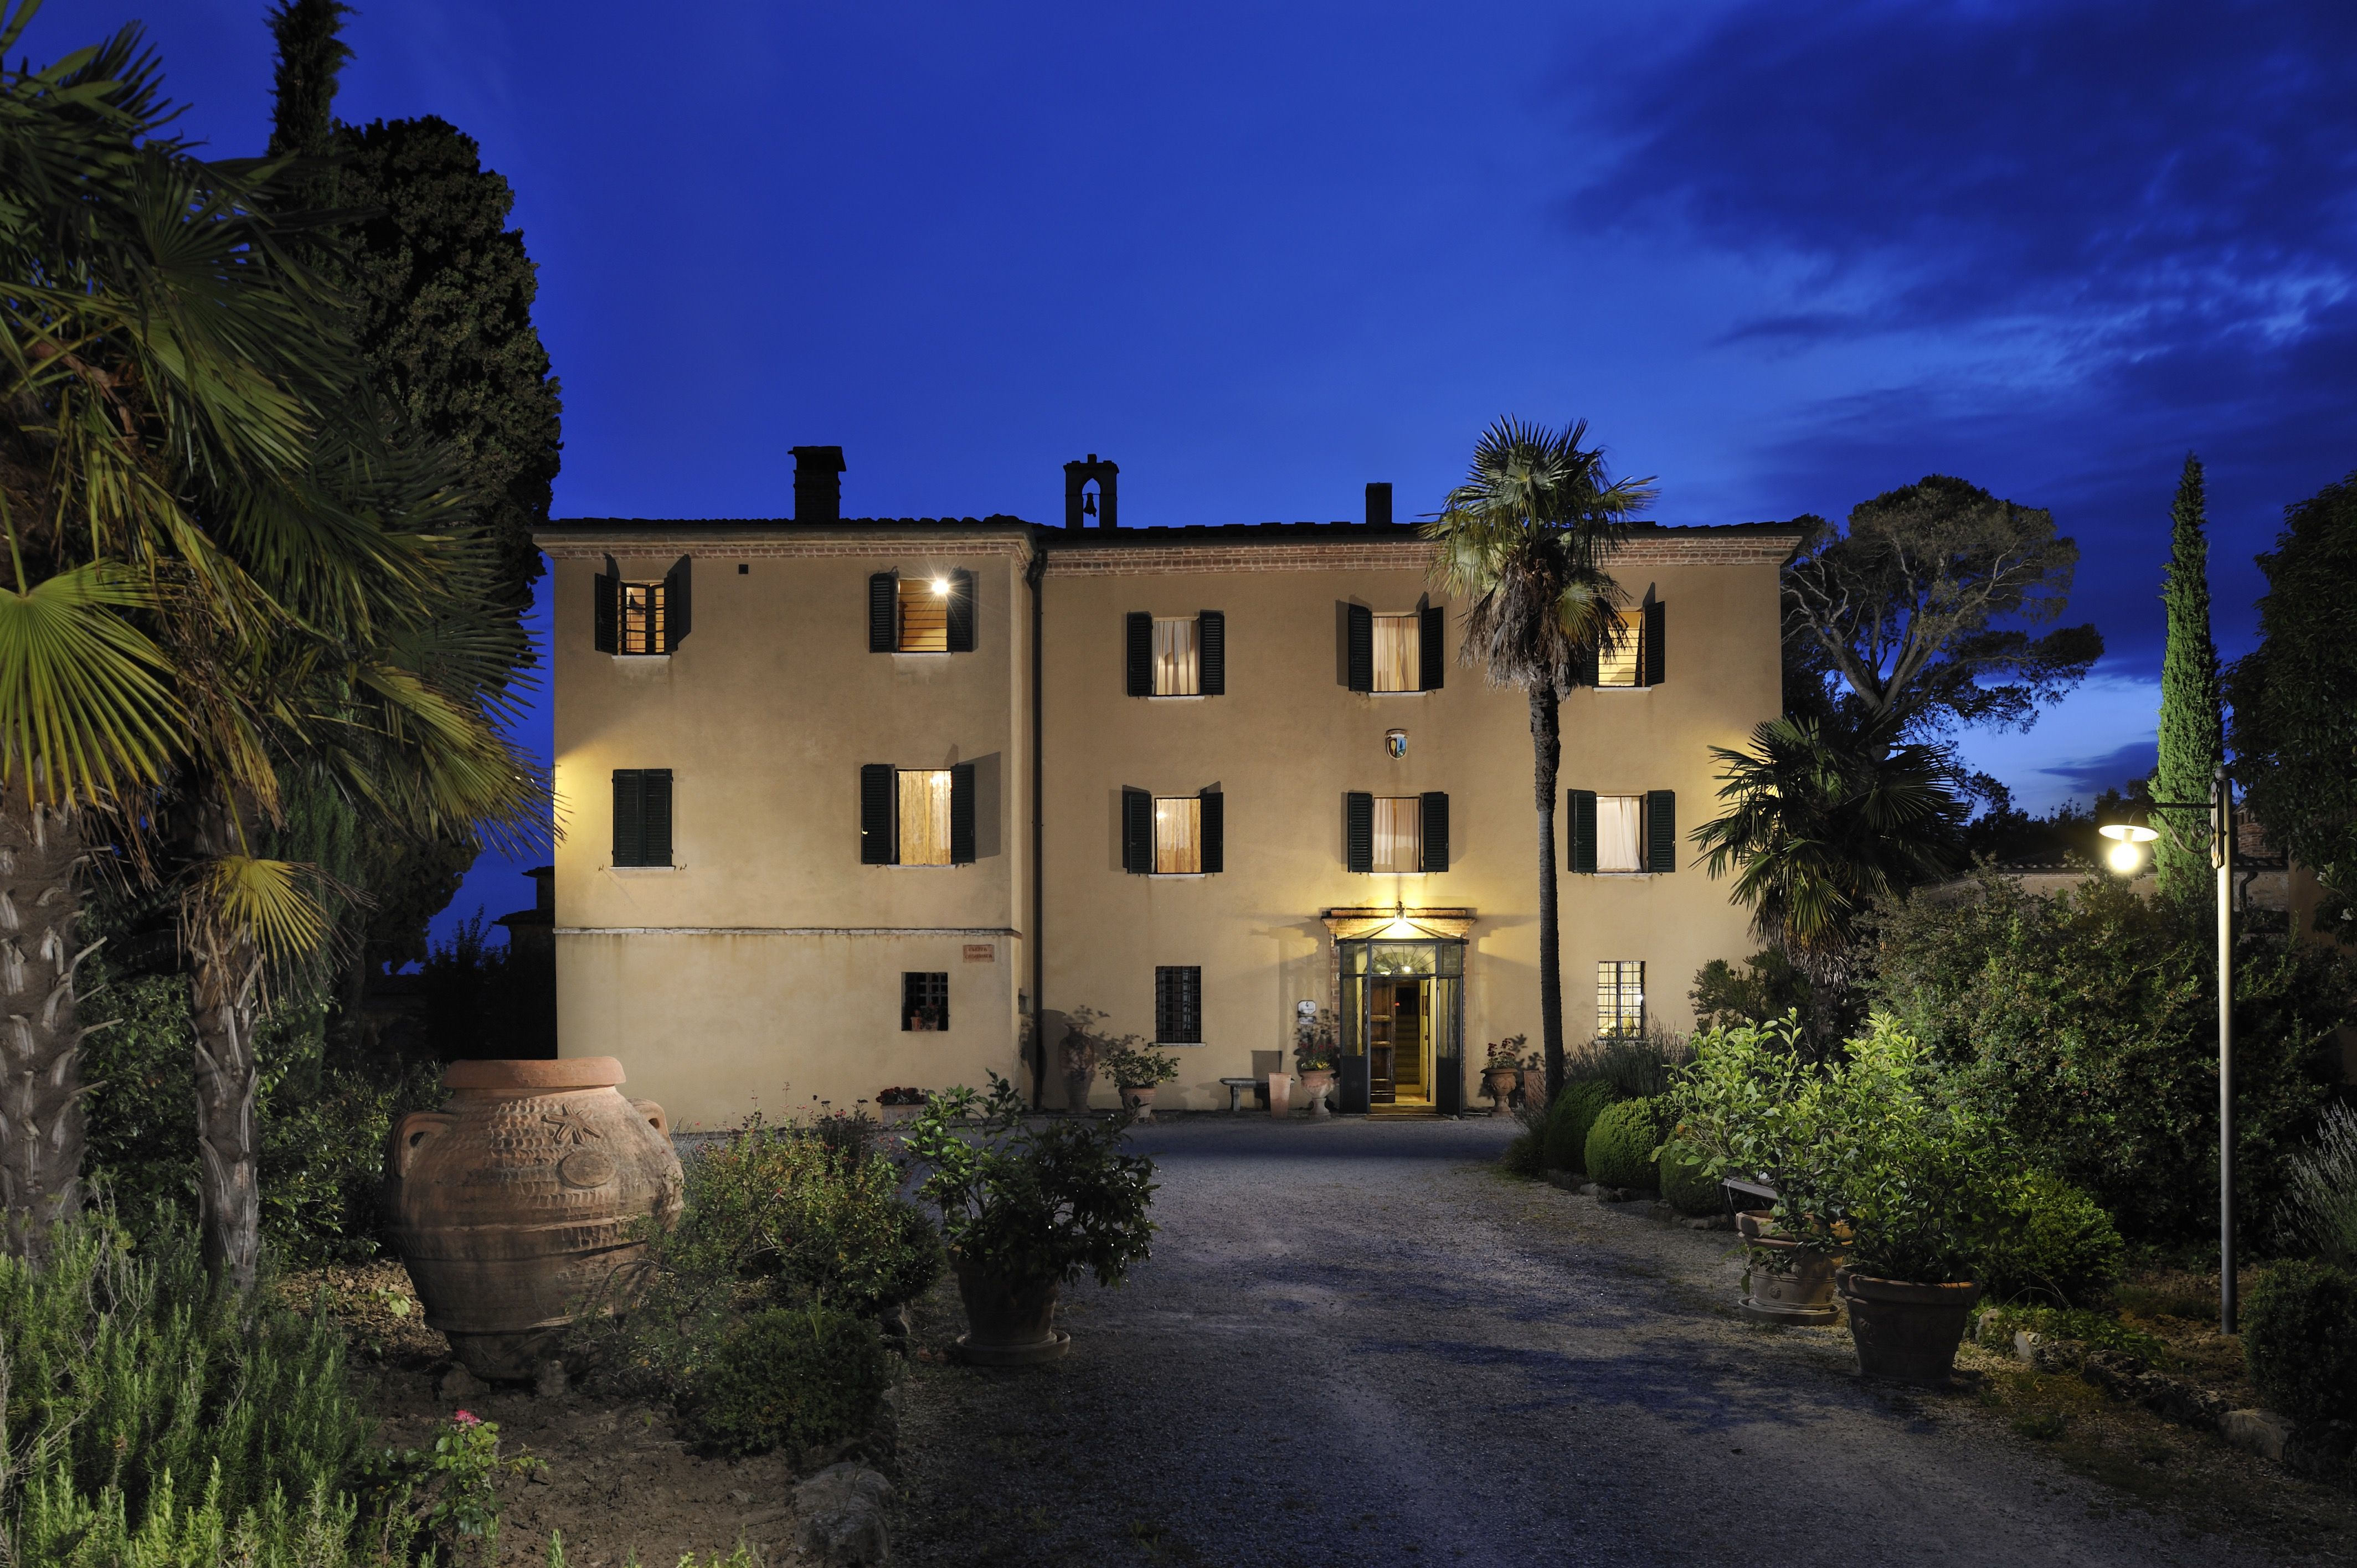 Luxury Villas For Sale In Hotel De Charme The Beautiful Houses